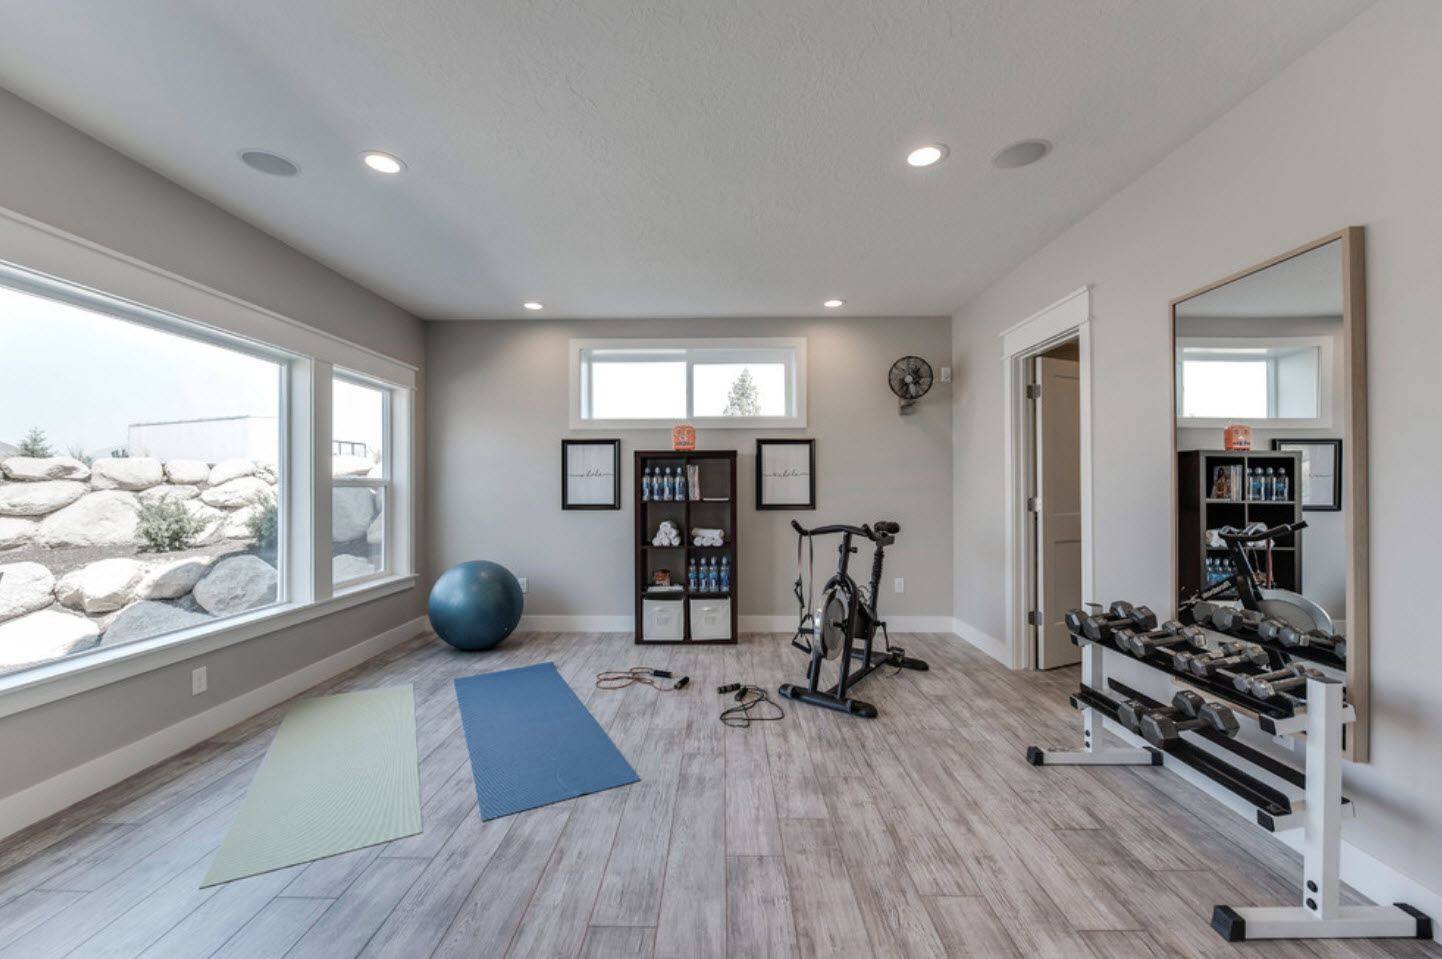 Gym at the spacious room with glossy floor and large windows